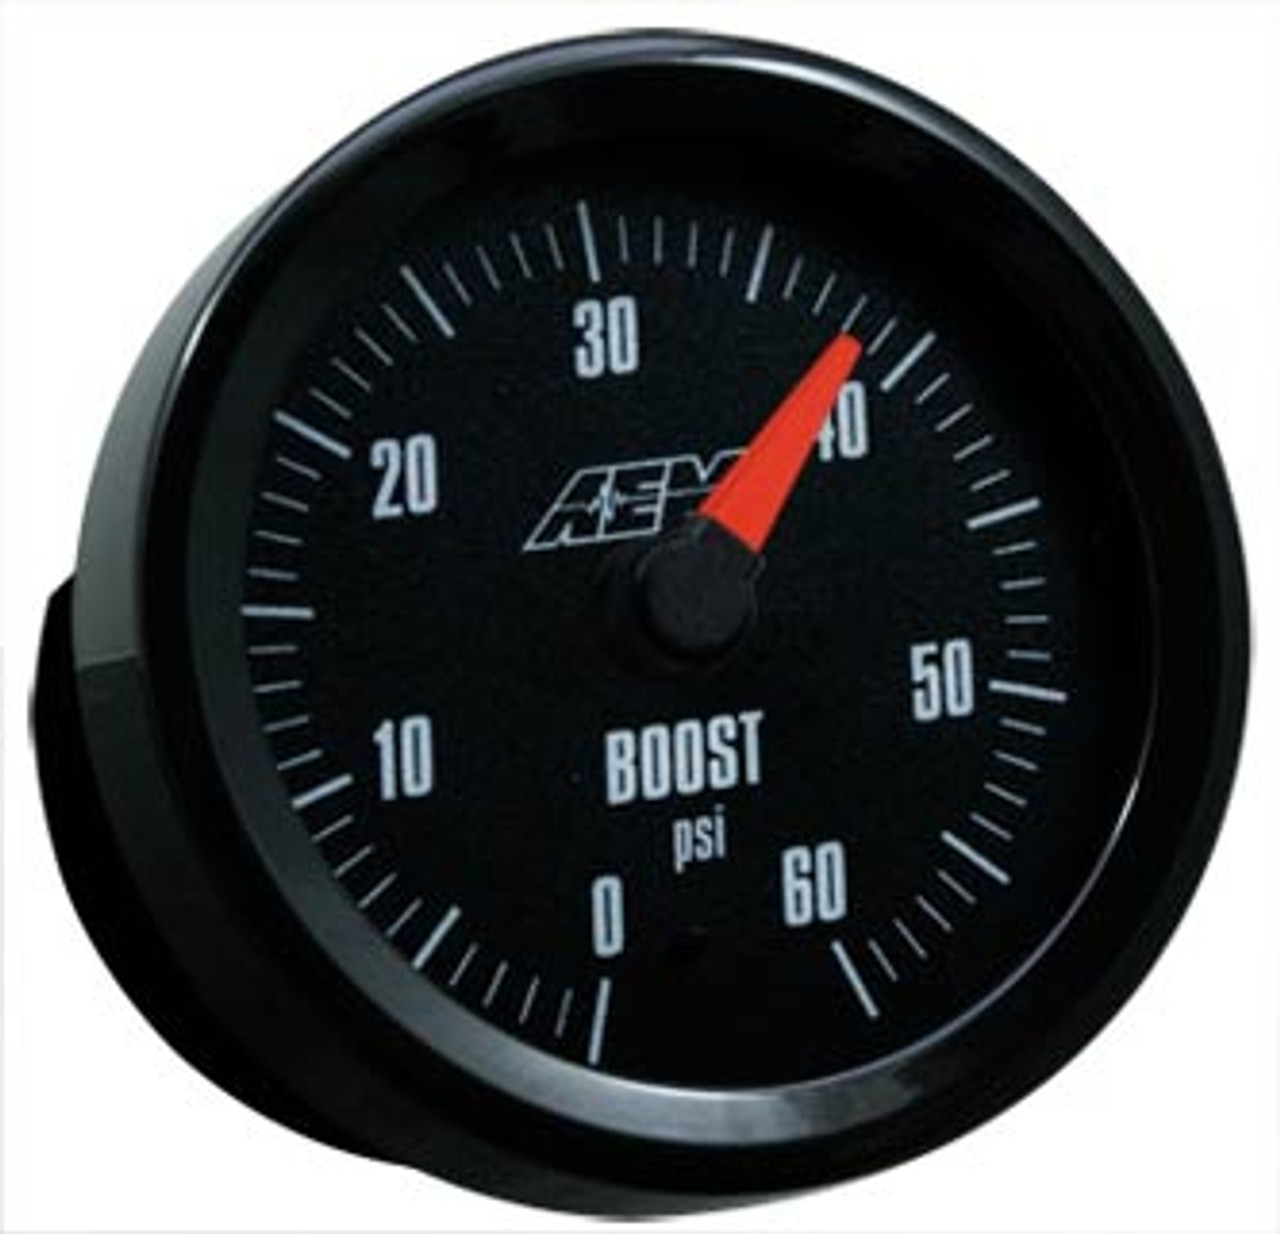 [DIAGRAM_09CH]  AEM Analog Boost Gauge 0 to 60psi - AGP Turbo | Caliber Boost Gauge |  | AGP Turbo